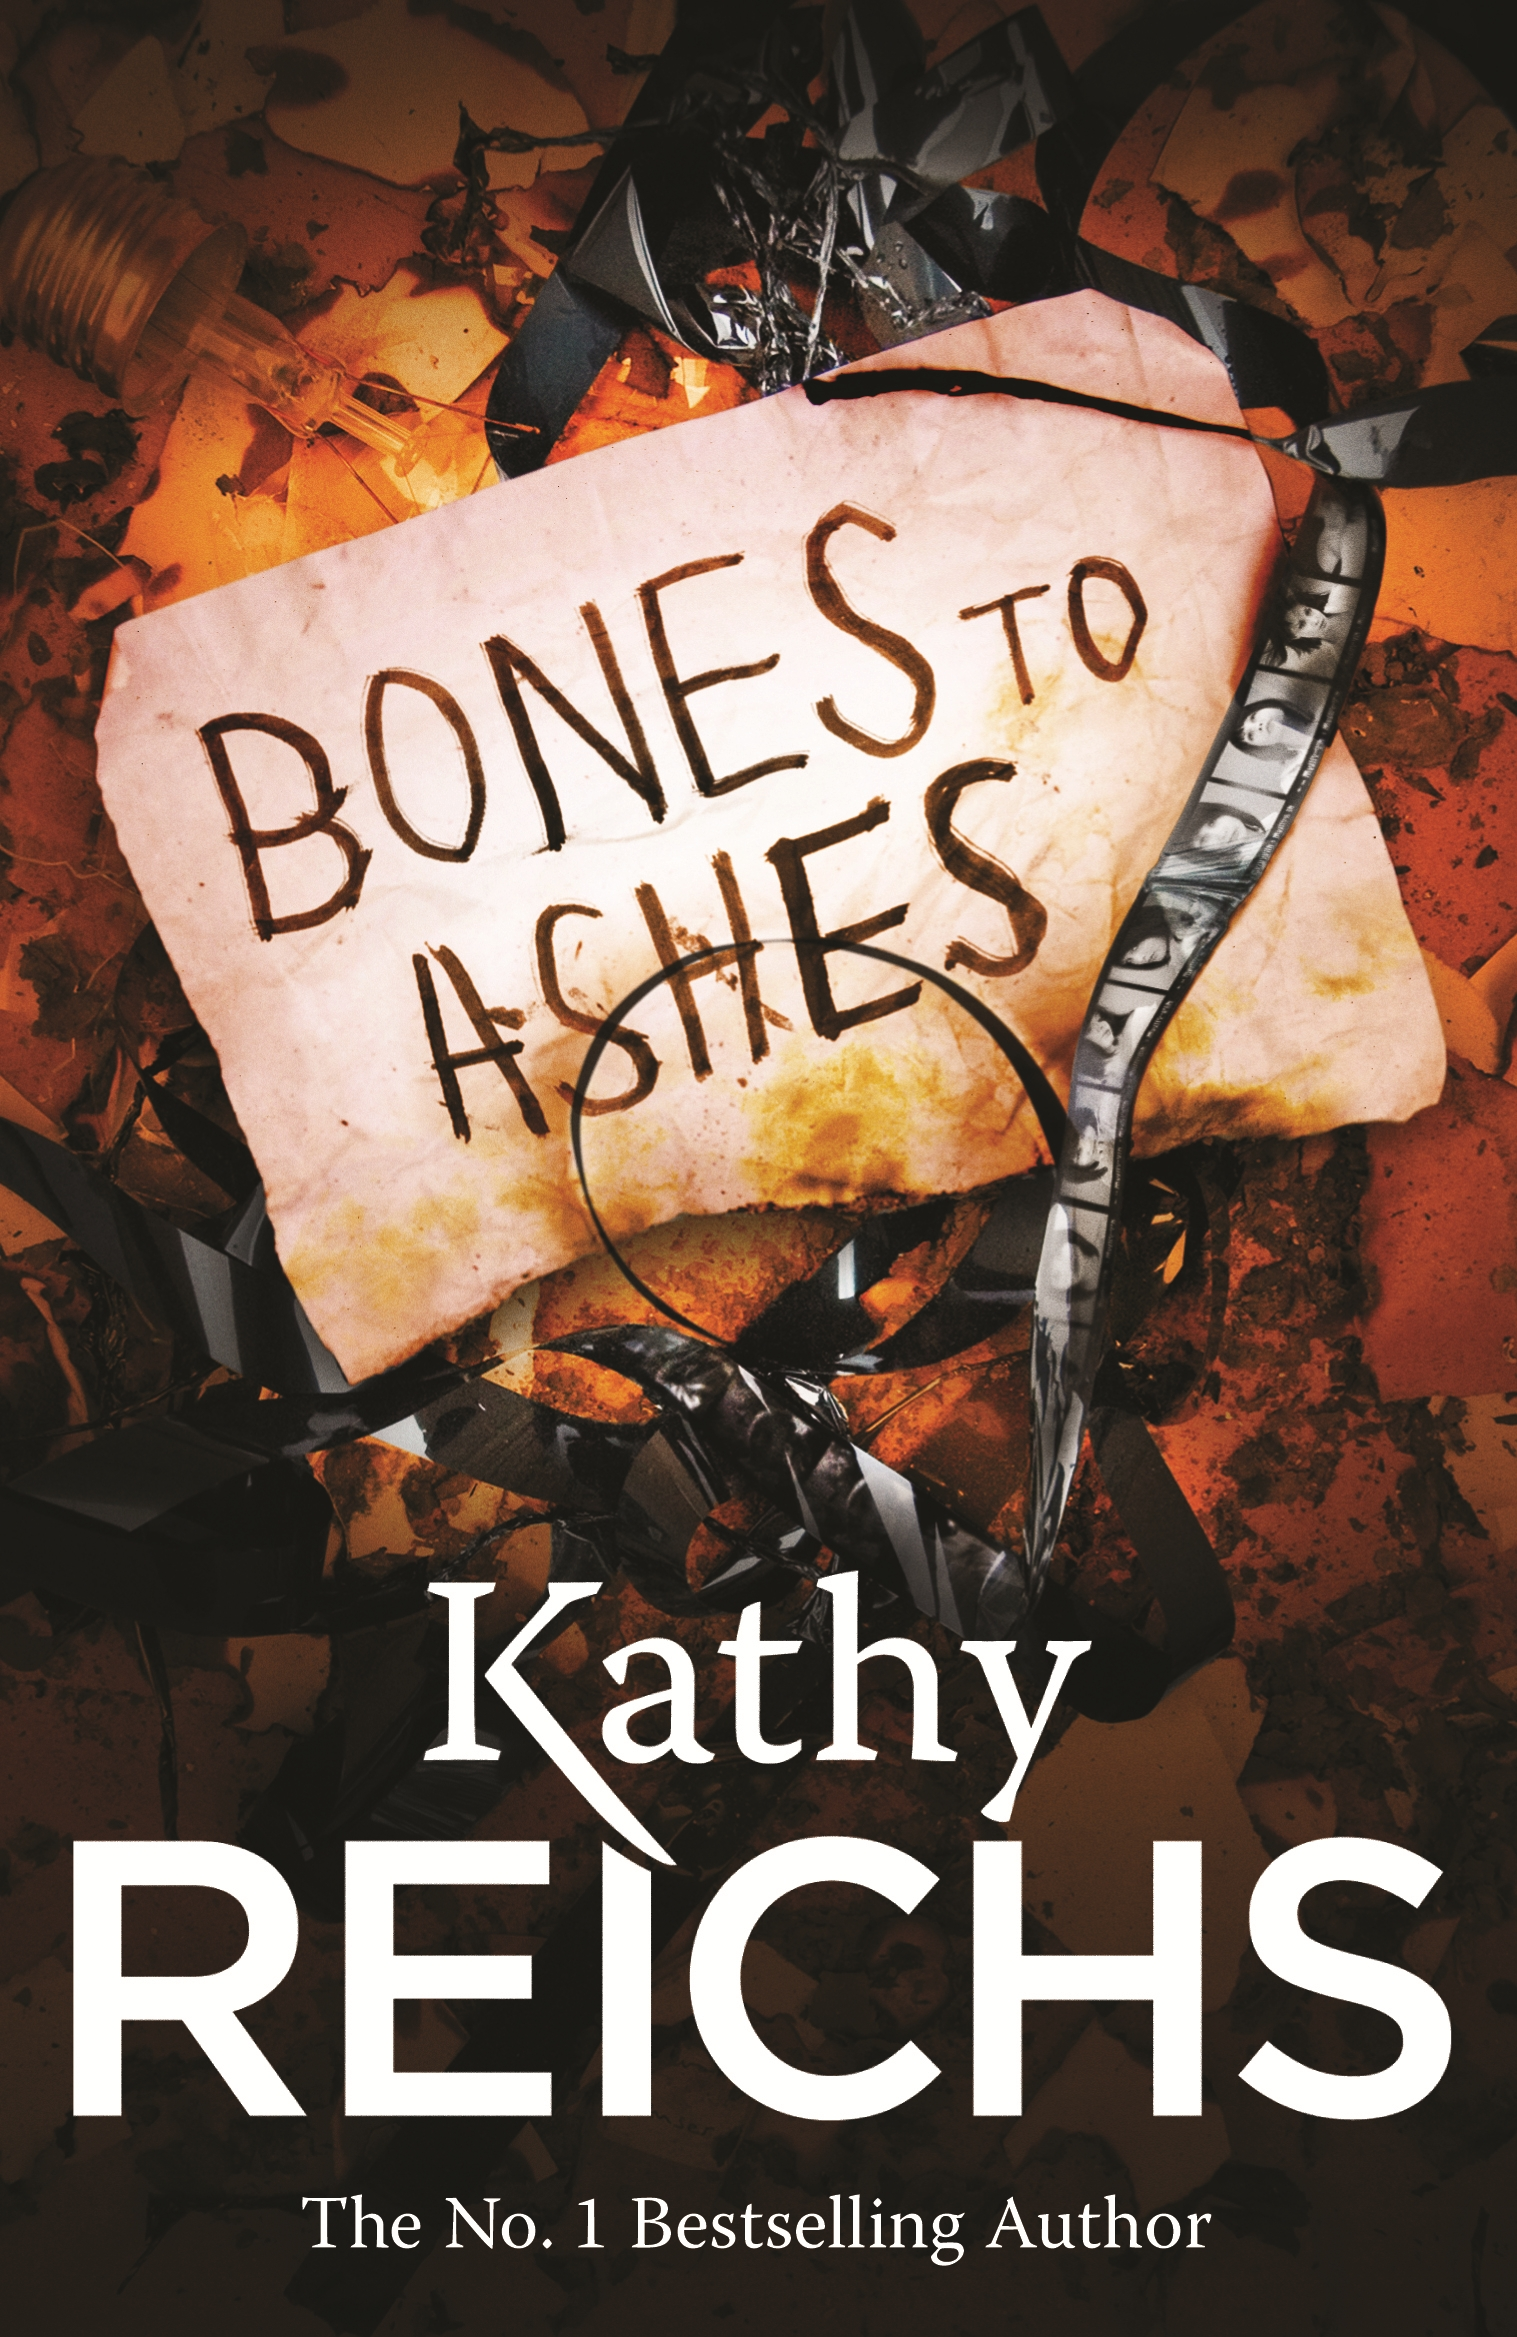 Bones to Ashes by Kathy Reichs - Penguin Books Australia